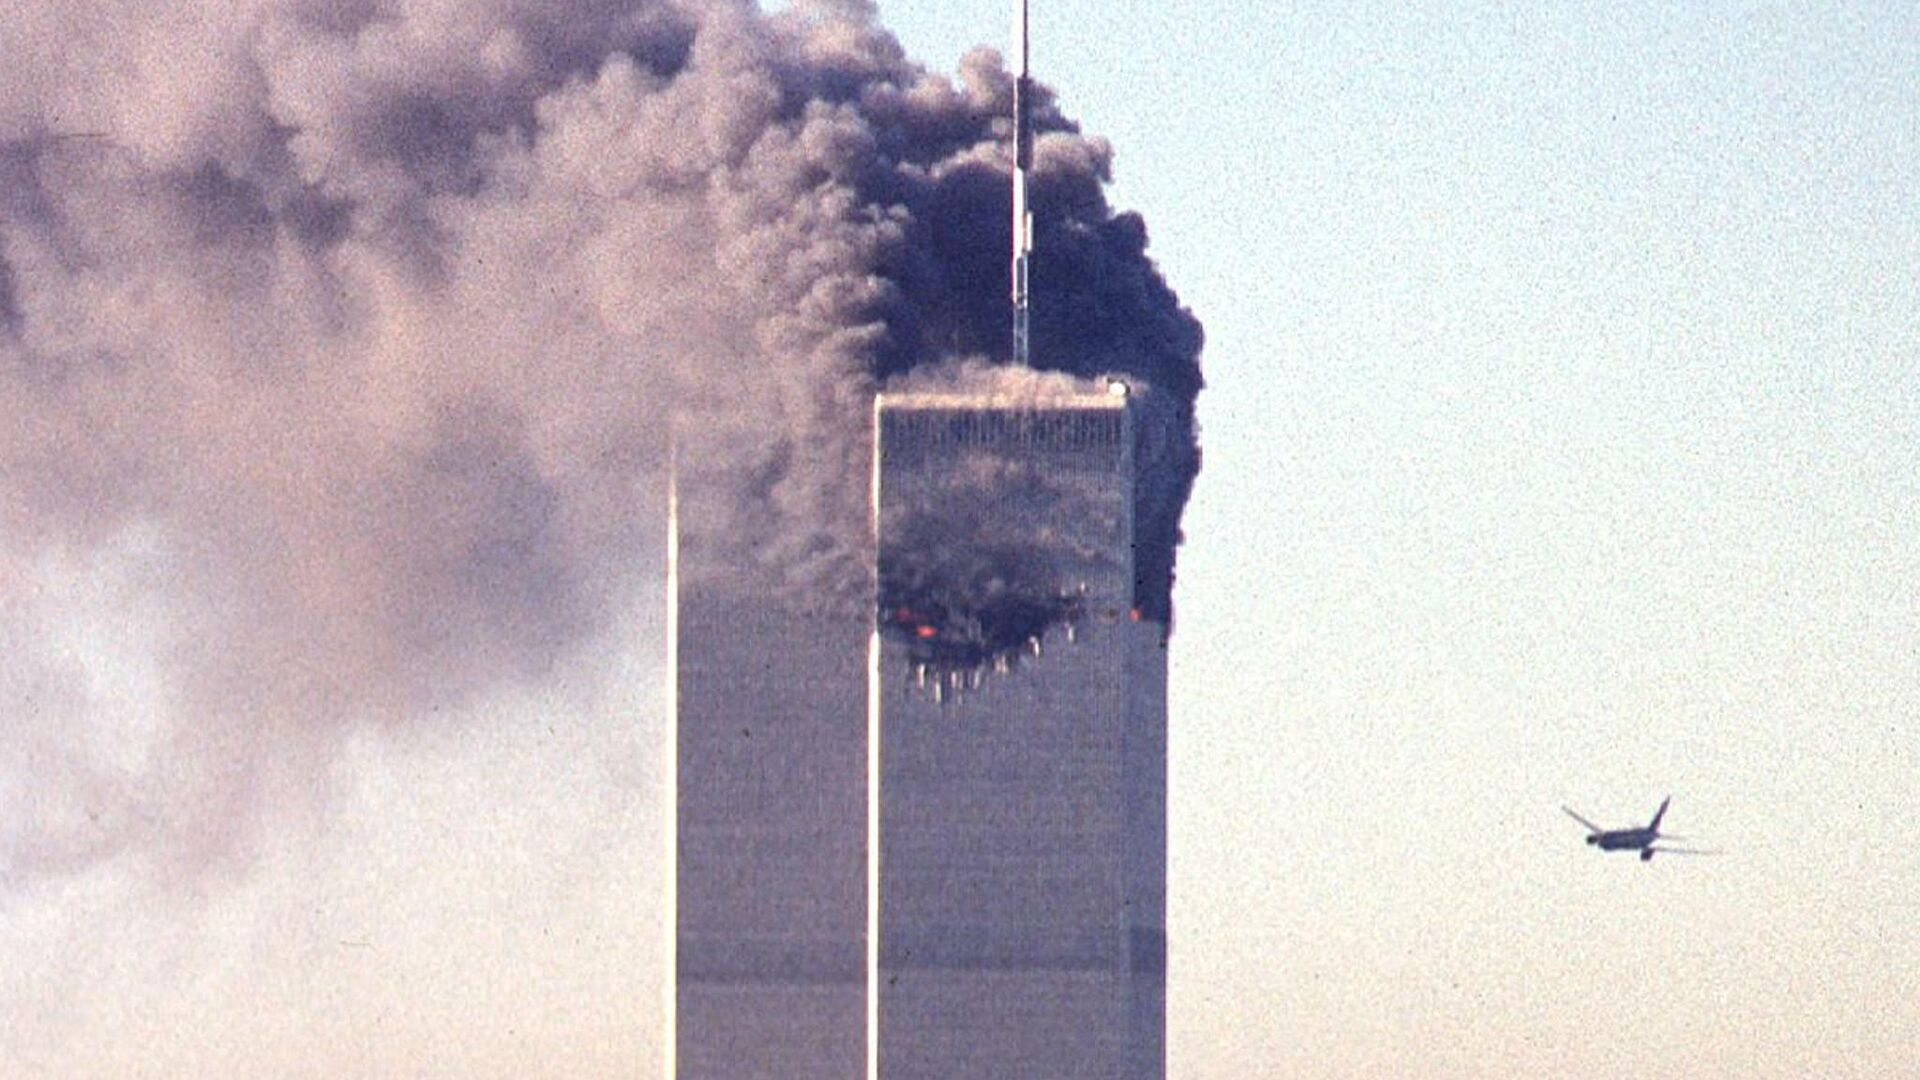 (FILES) In this file photo taken on September 11, 2001, a hijacked commercial aircraft approaches the twin towers of the World Trade Center shortly before crashing into the landmark skyscraper in New York.  - Sputnik International, 1920, 12.09.2021